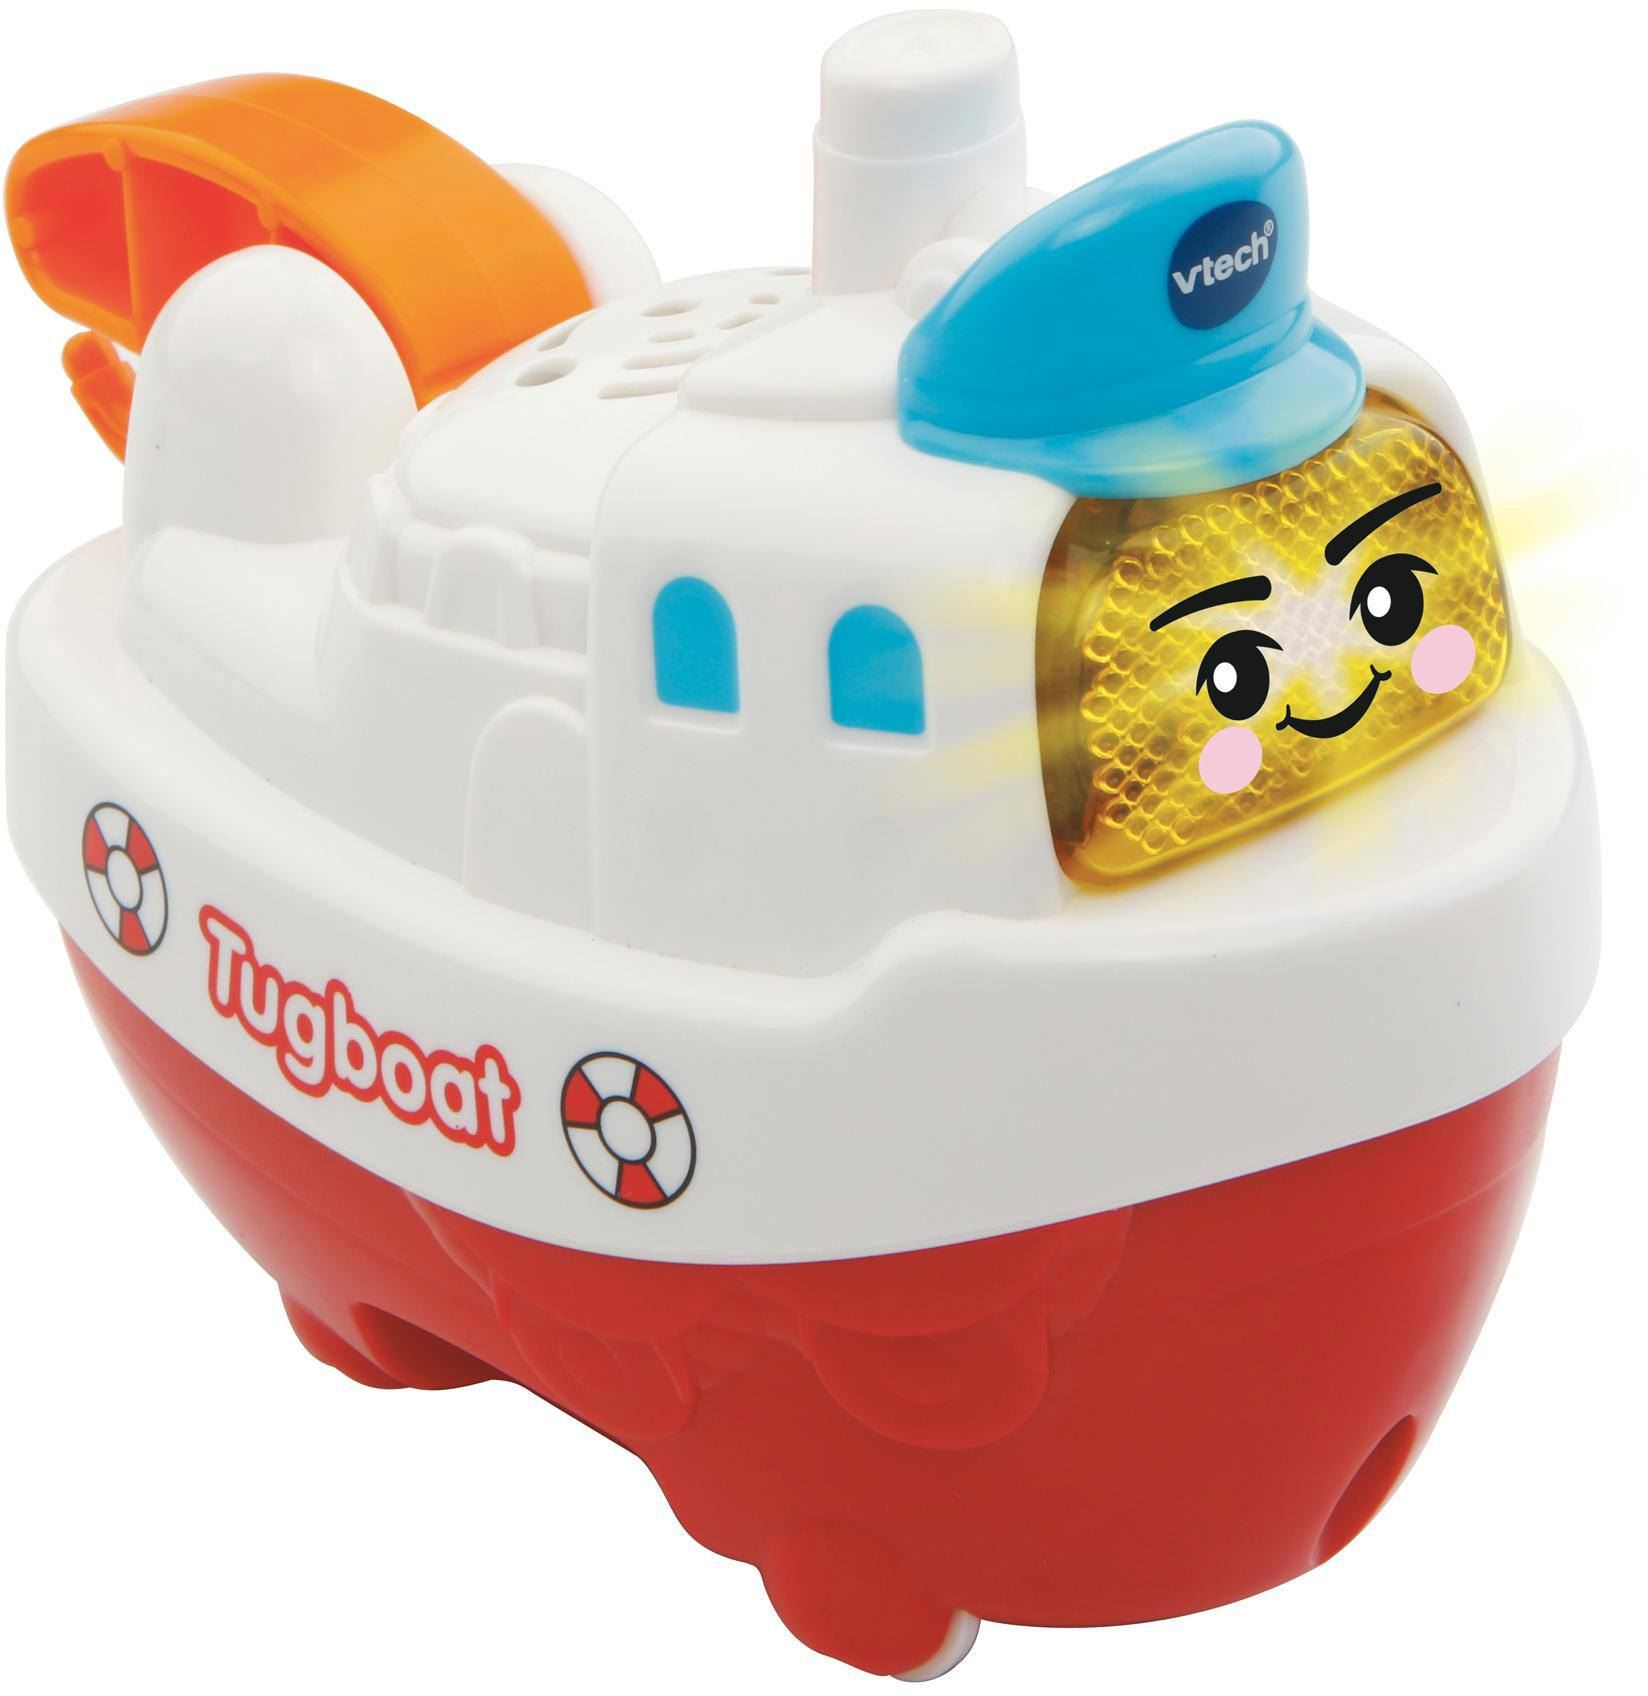 Vtech Baby Toot-Toot Splash Tugboat Interactive Light Sound Bath Toy ...